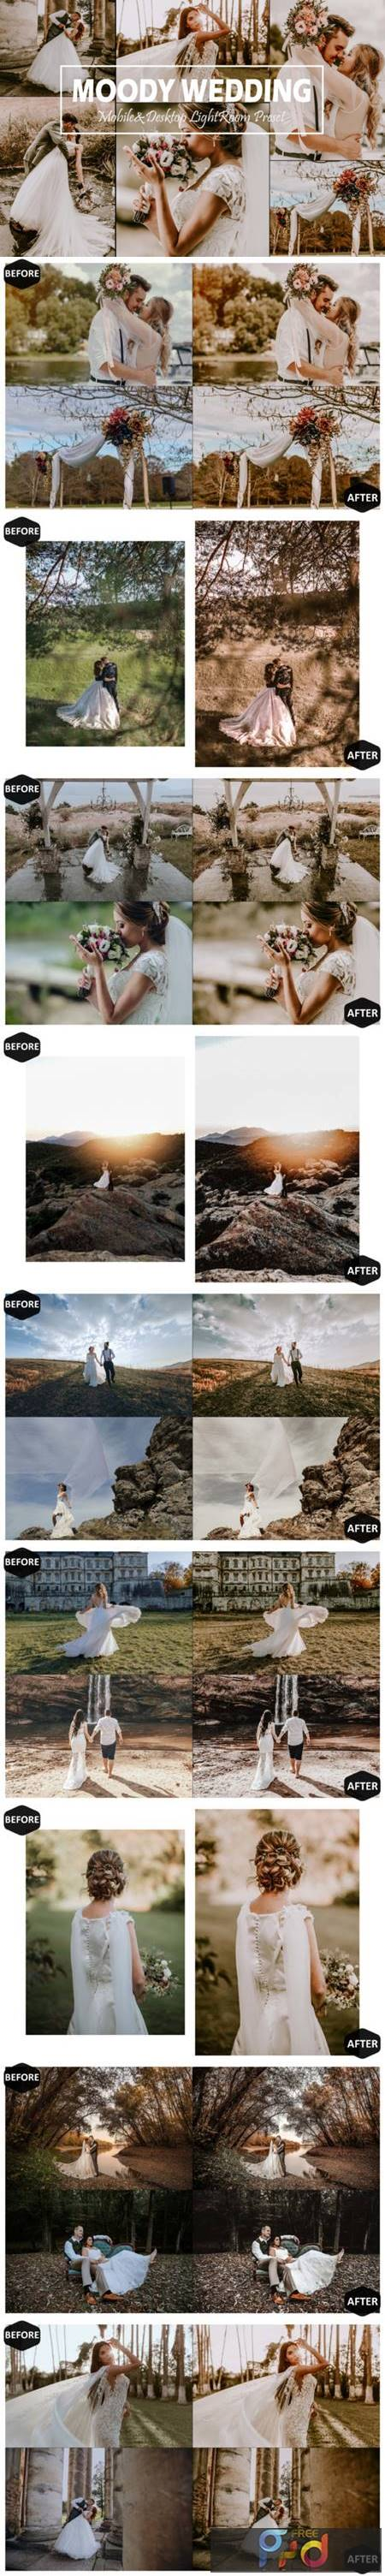 10 Moody Wedding Mobile & Desktop Lightroom Presets 5916494 1